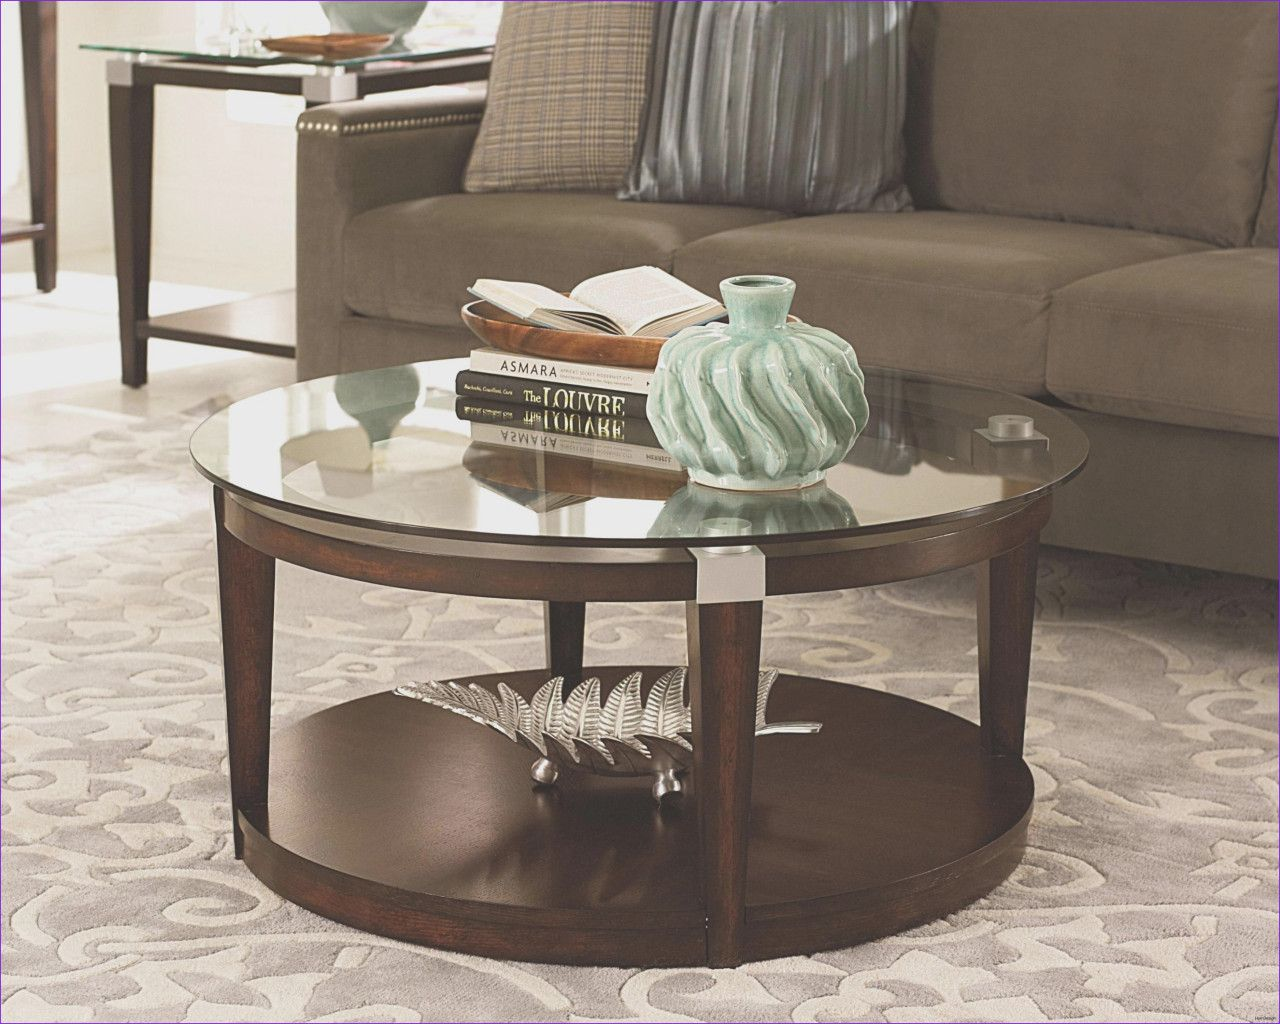 28 Fresh Baby Proof Coffee Table 2019 Round Coffee Table Decor Round Coffee Table Round Wood Coffee Table [ 1024 x 1280 Pixel ]